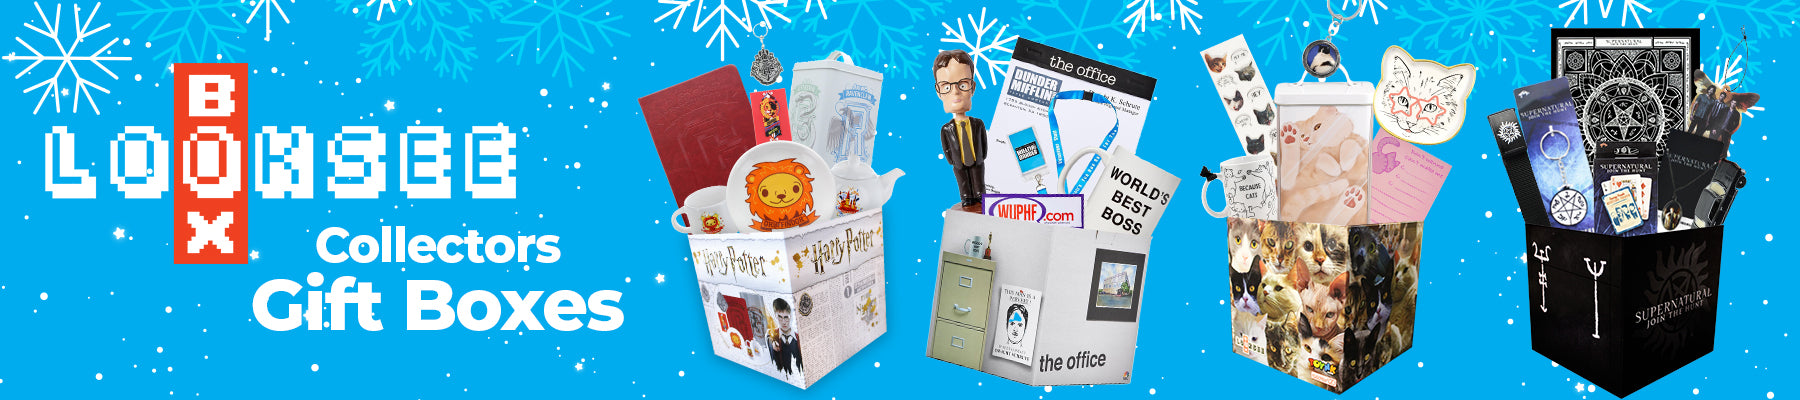 LookSee Collectors Gift Boxes Make Great Holiday Gifts